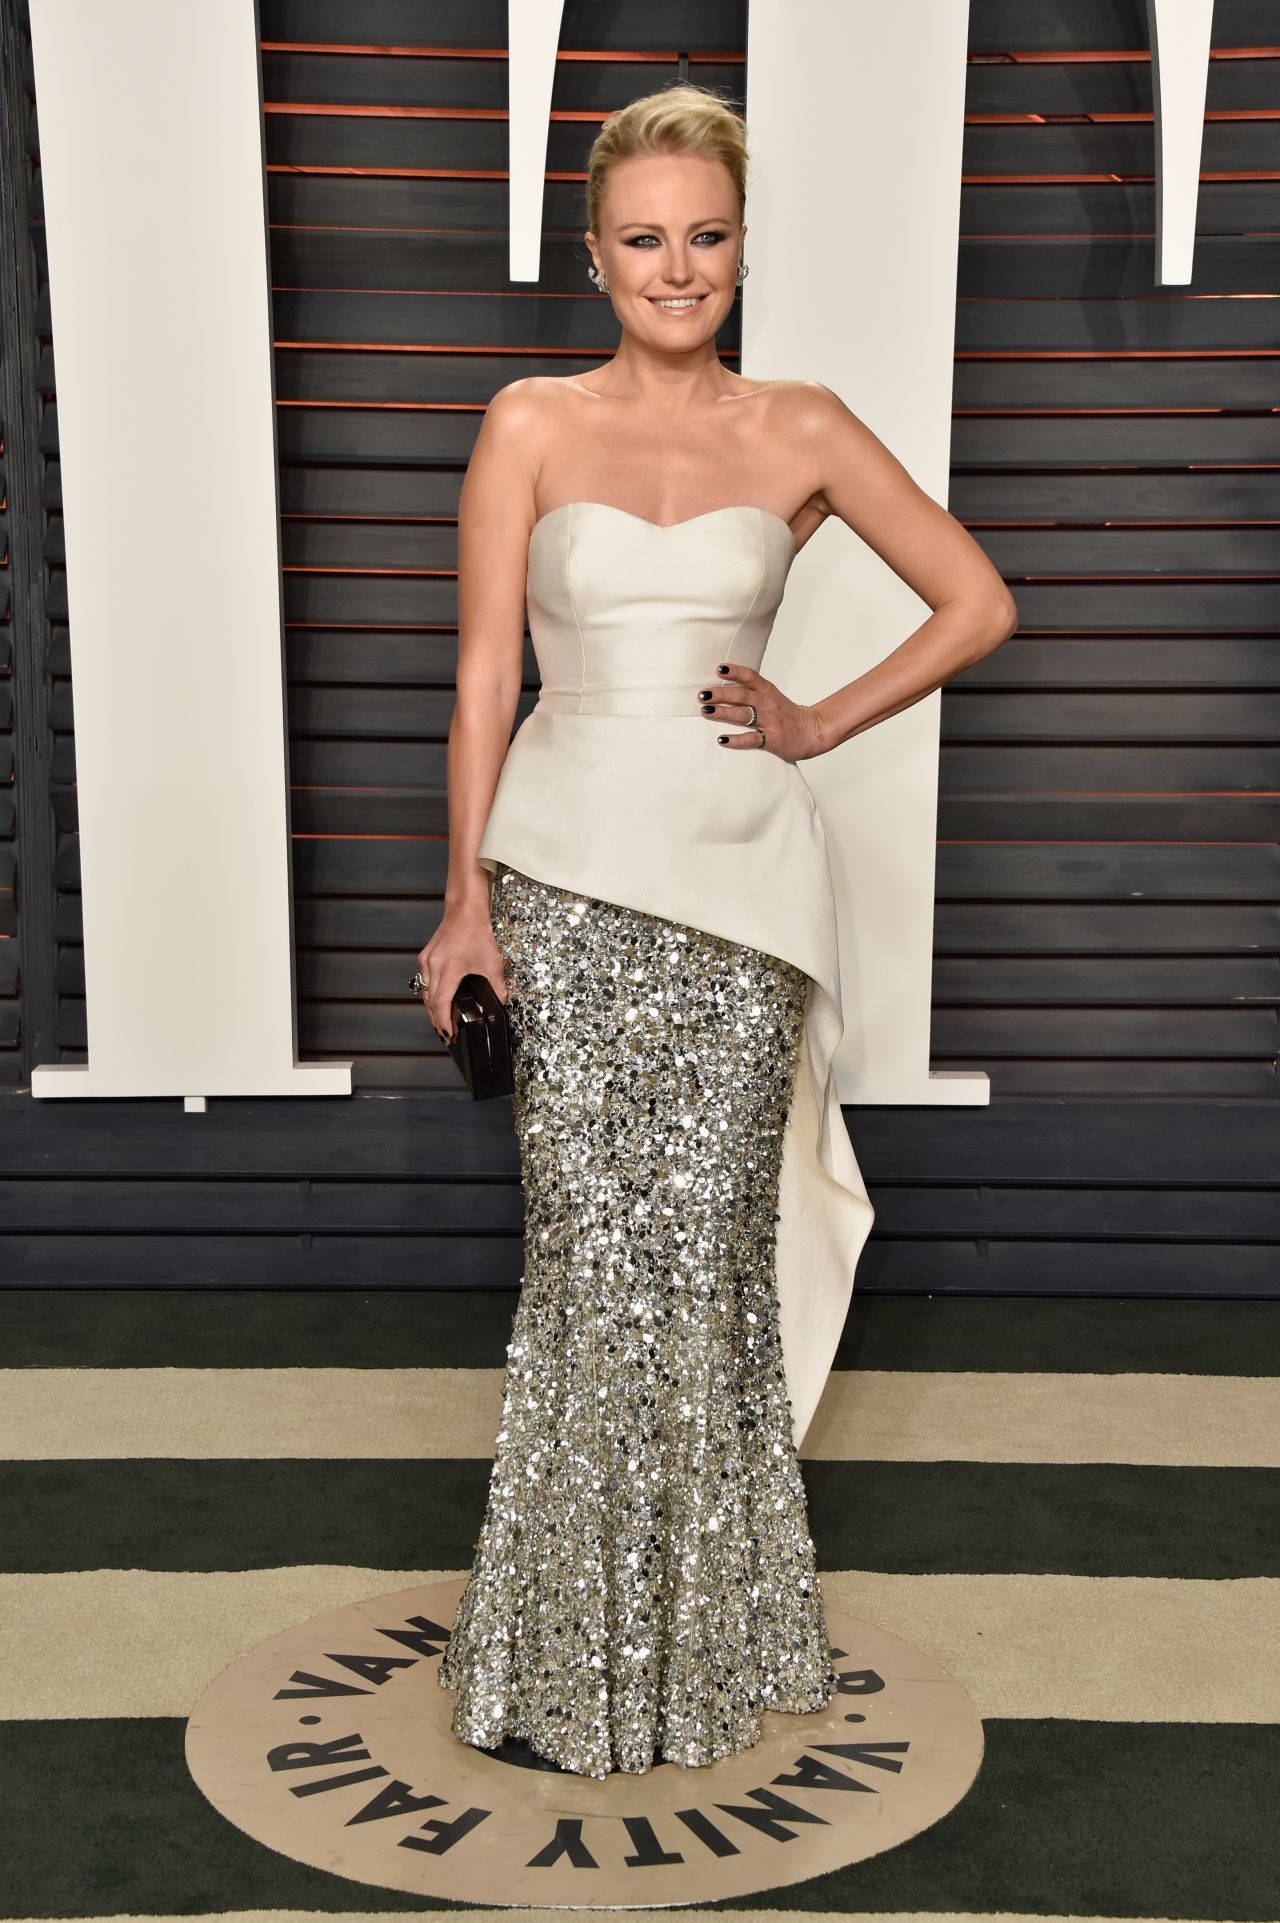 malin-ackerman-2016-vanity-fair-oscar-party-in-beverly-hills-ca-3